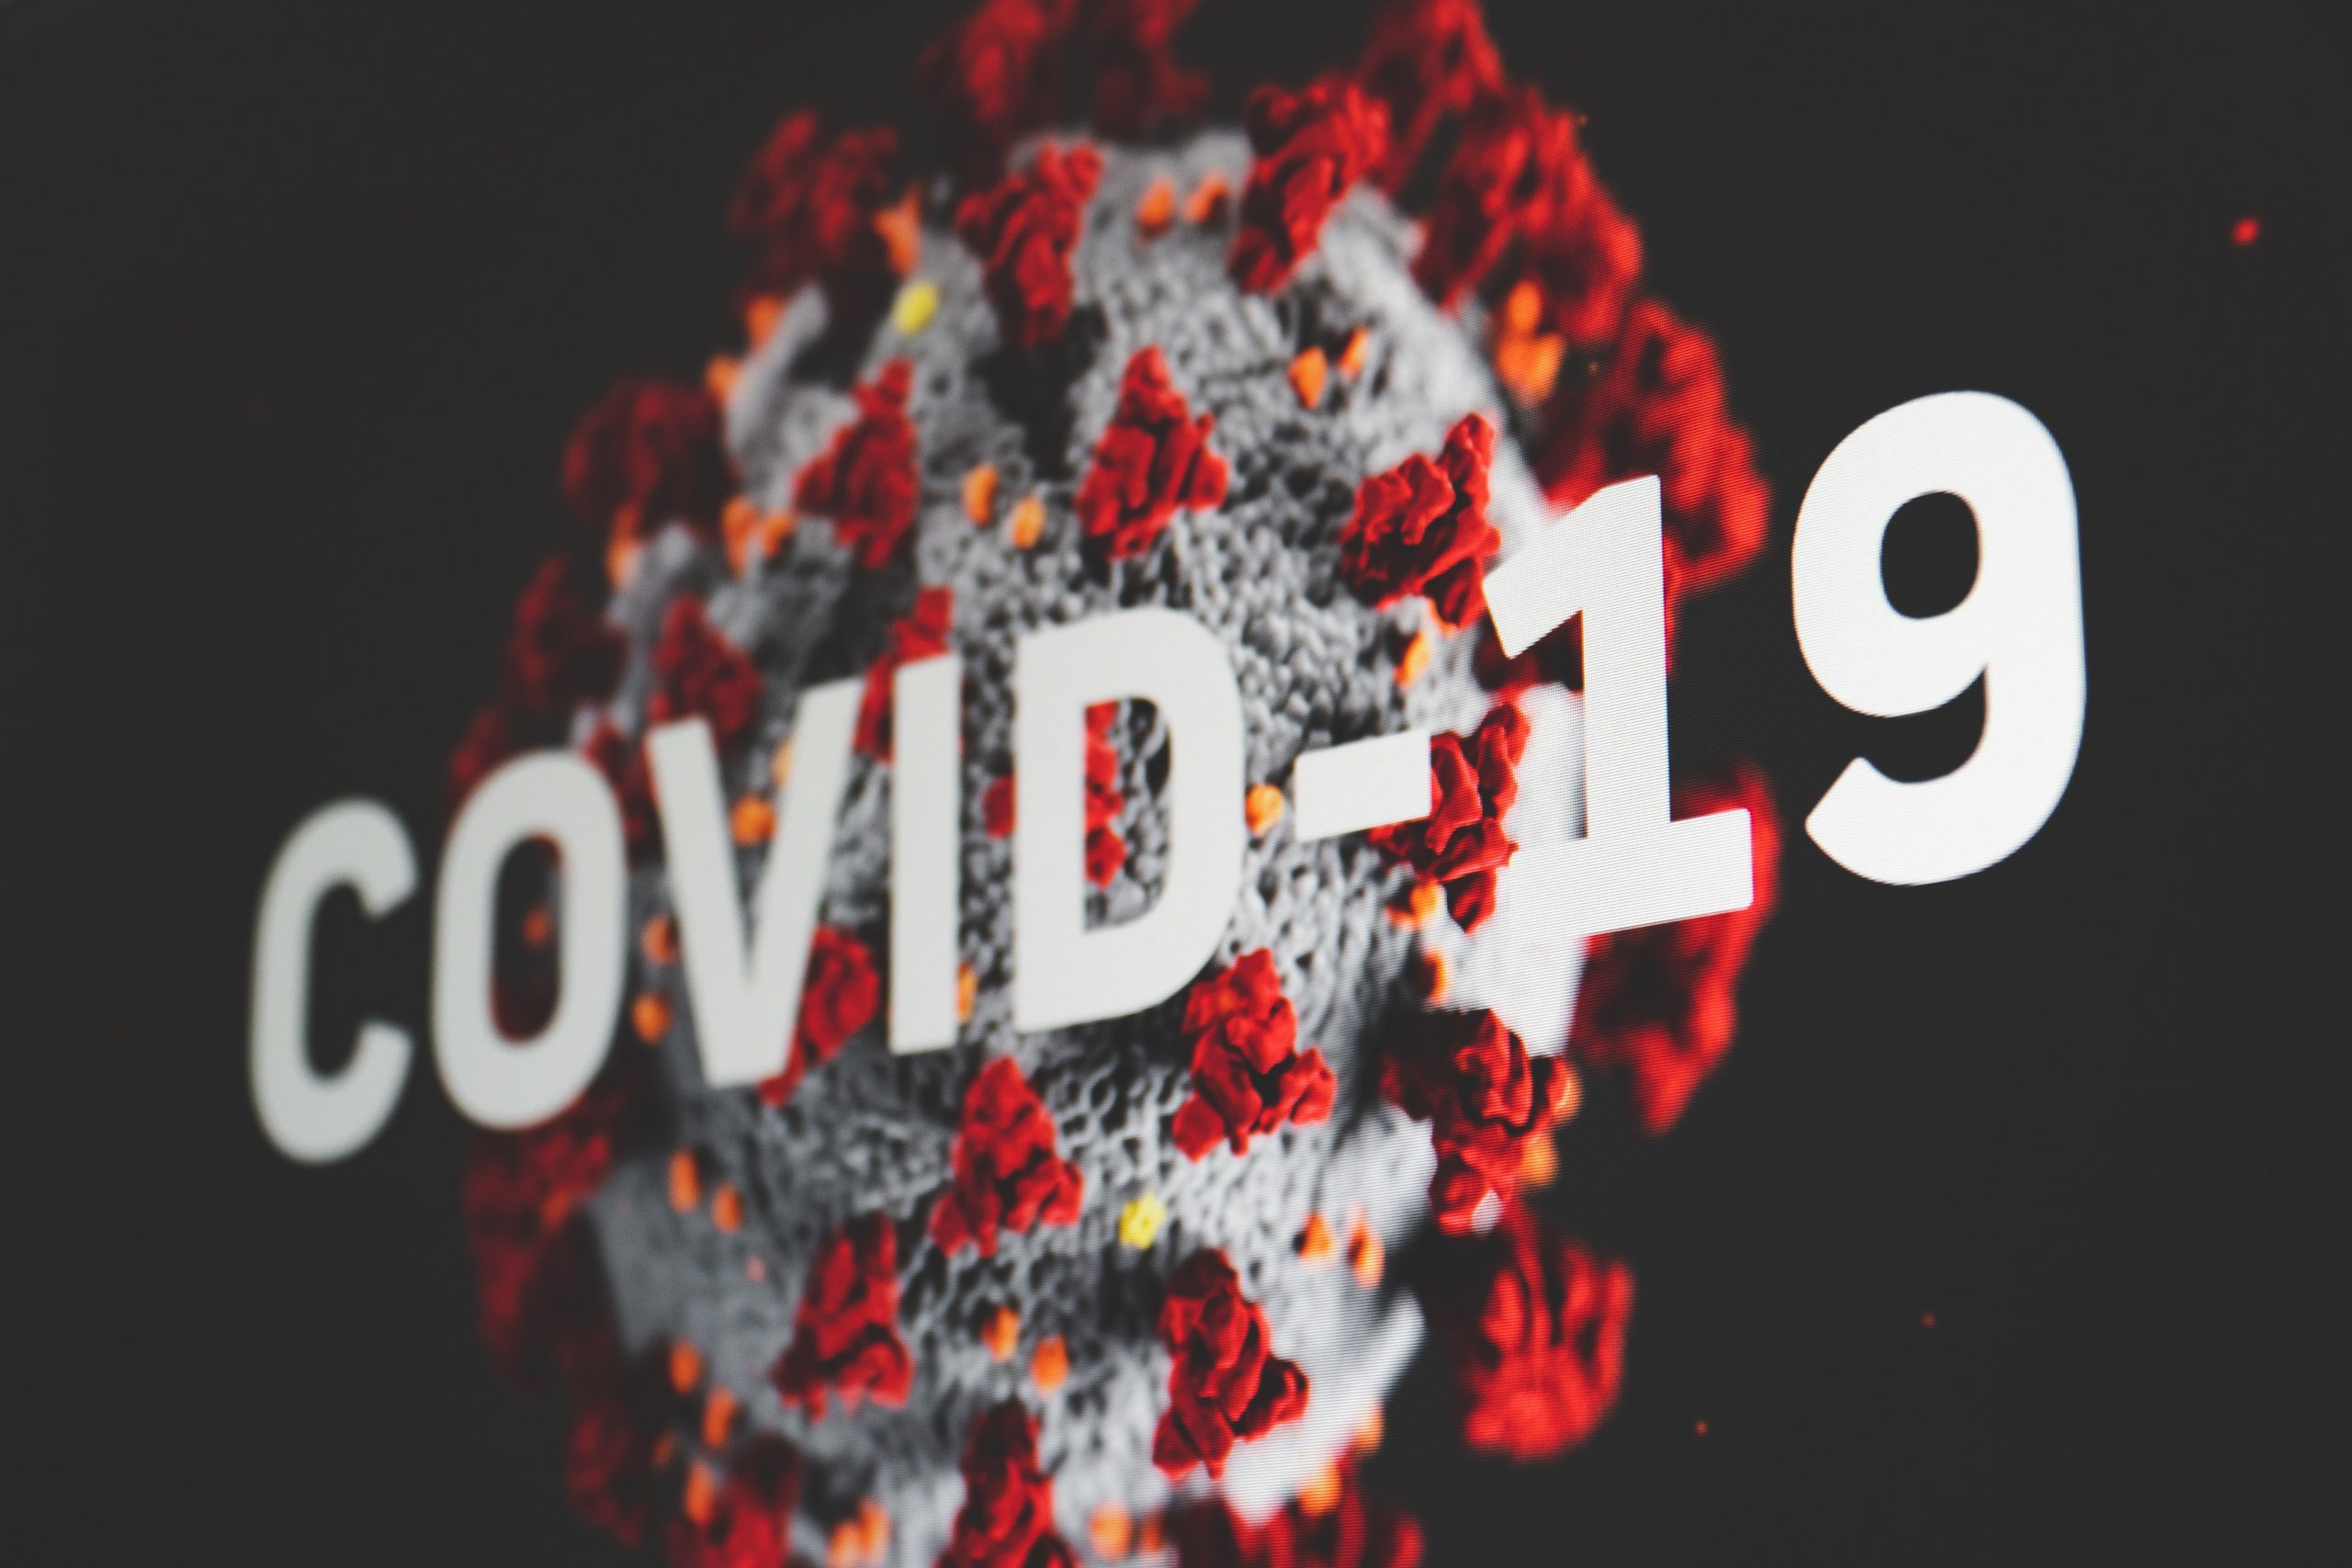 an image representing the Covid-19 virus